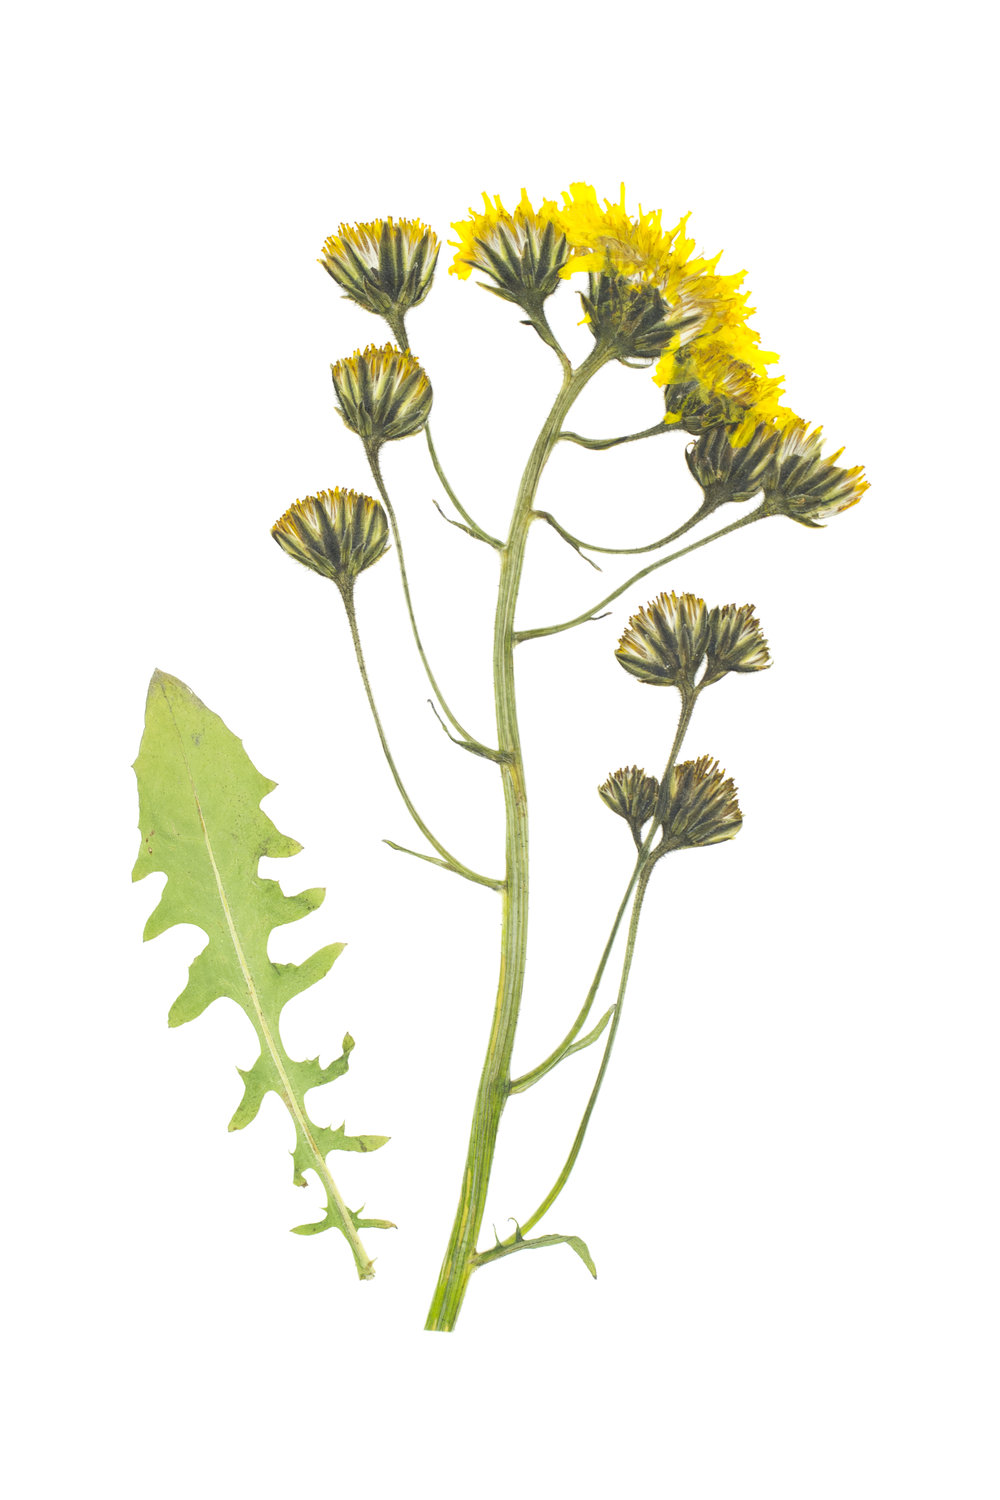 Smooth Hawksbeard / Crepis capillaris